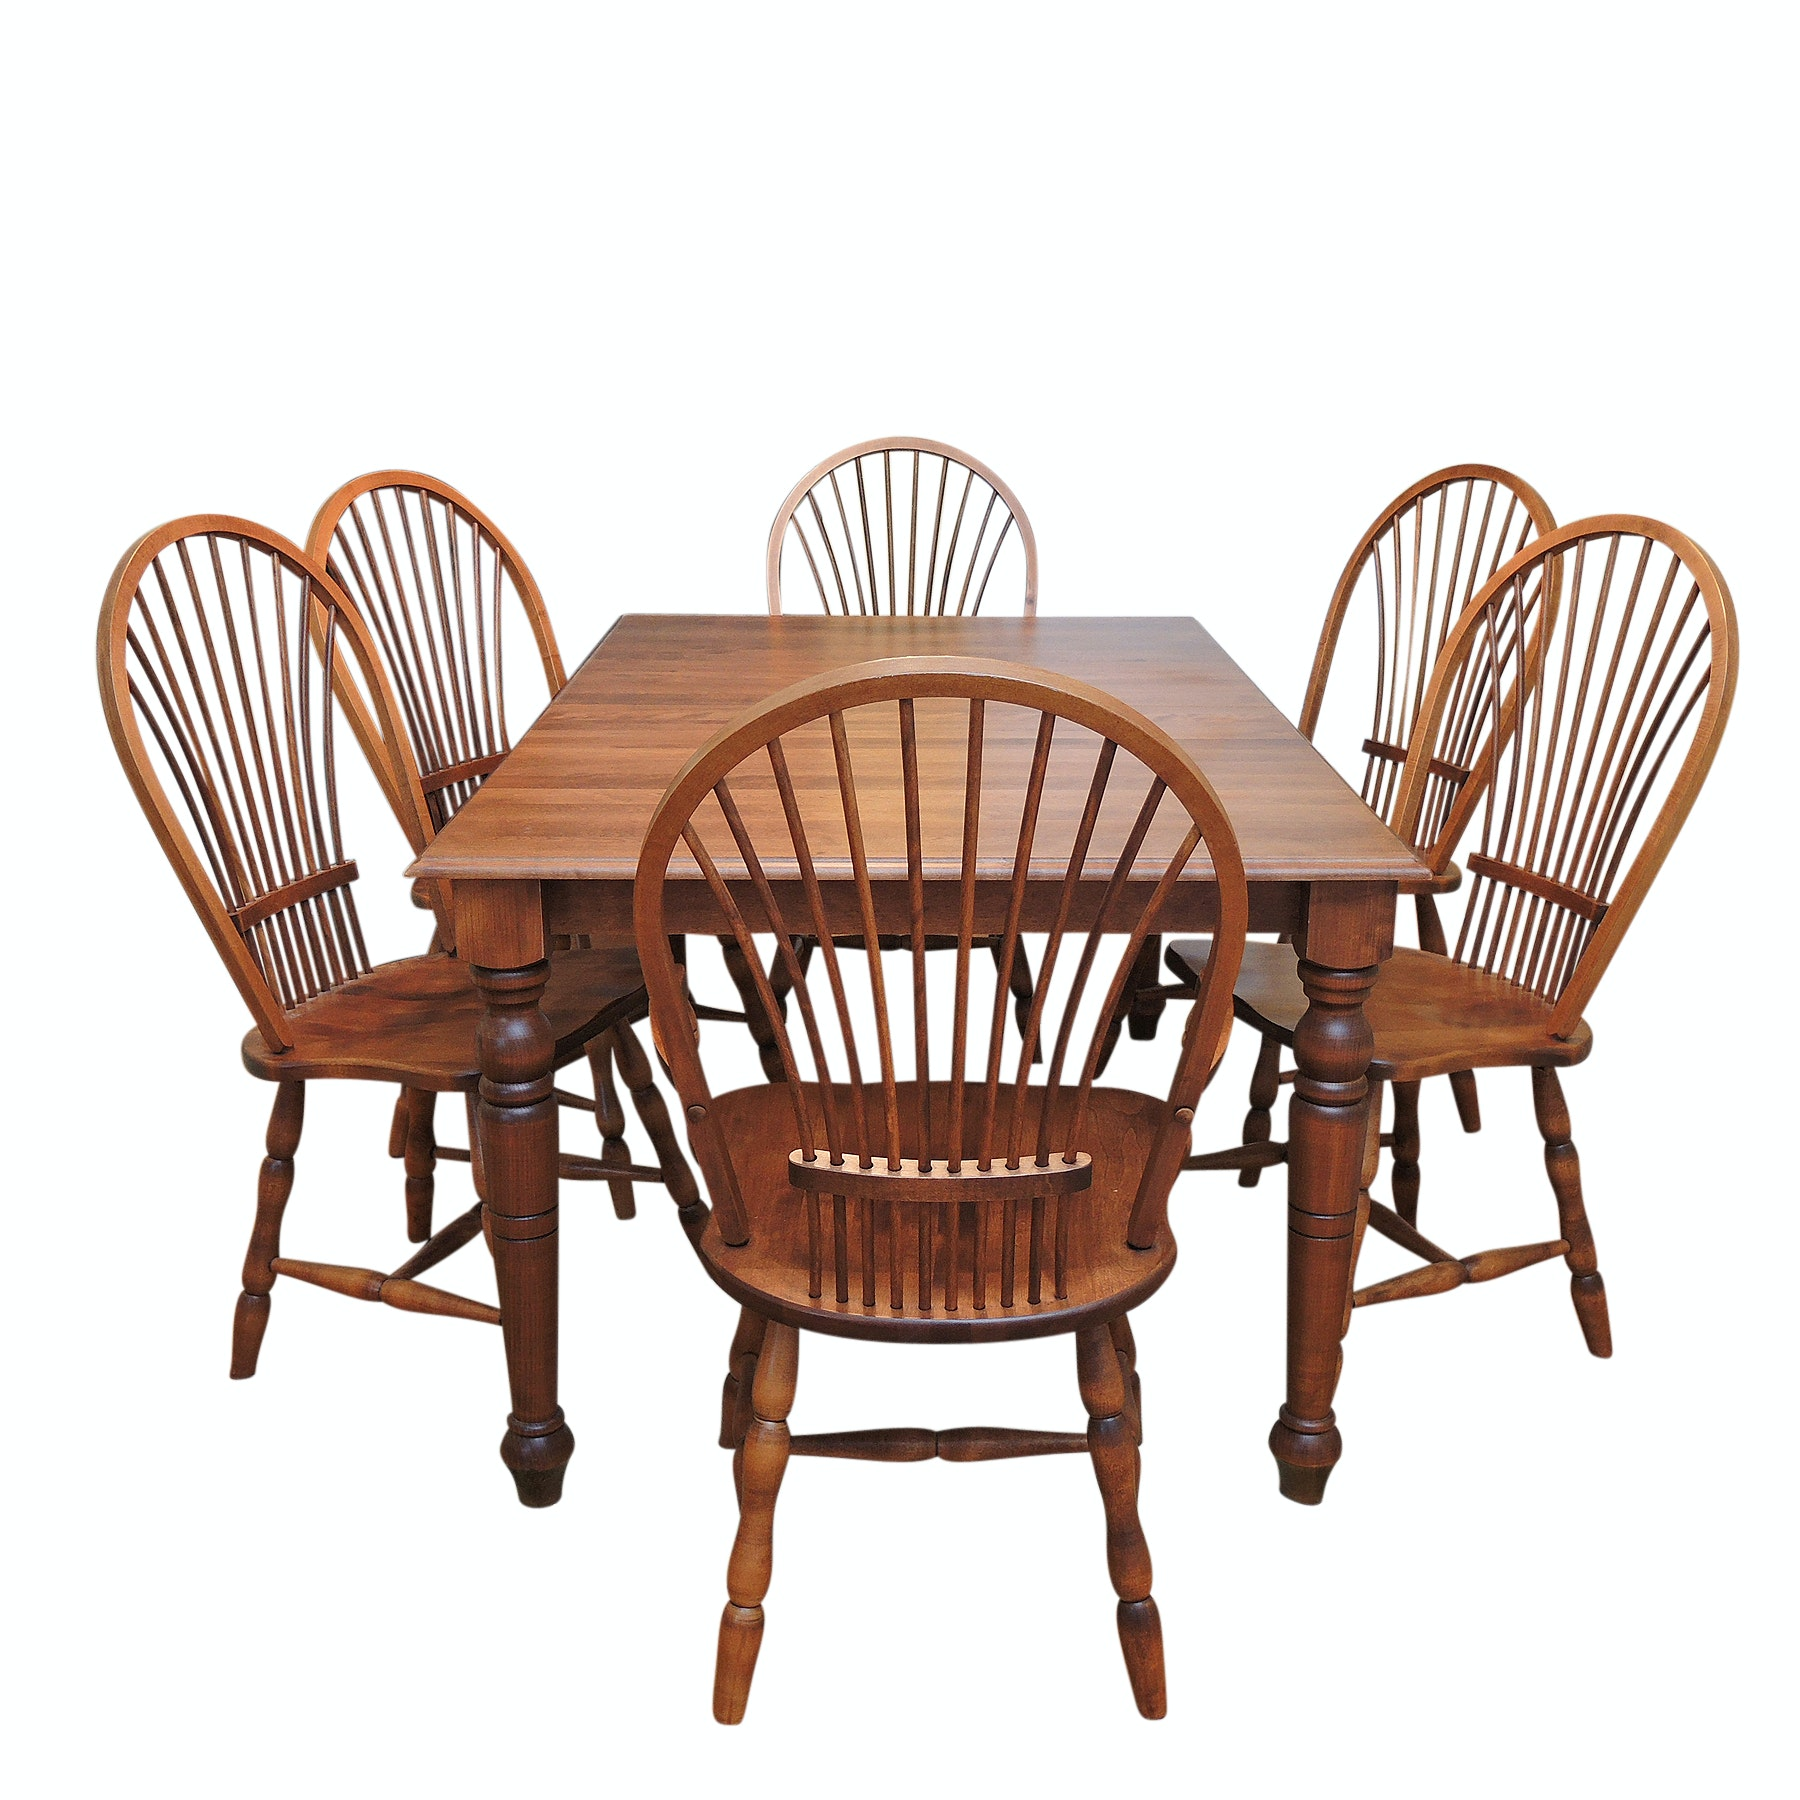 Bedard Farmhouse Style Dining Table and Six Windsor Style Chairs